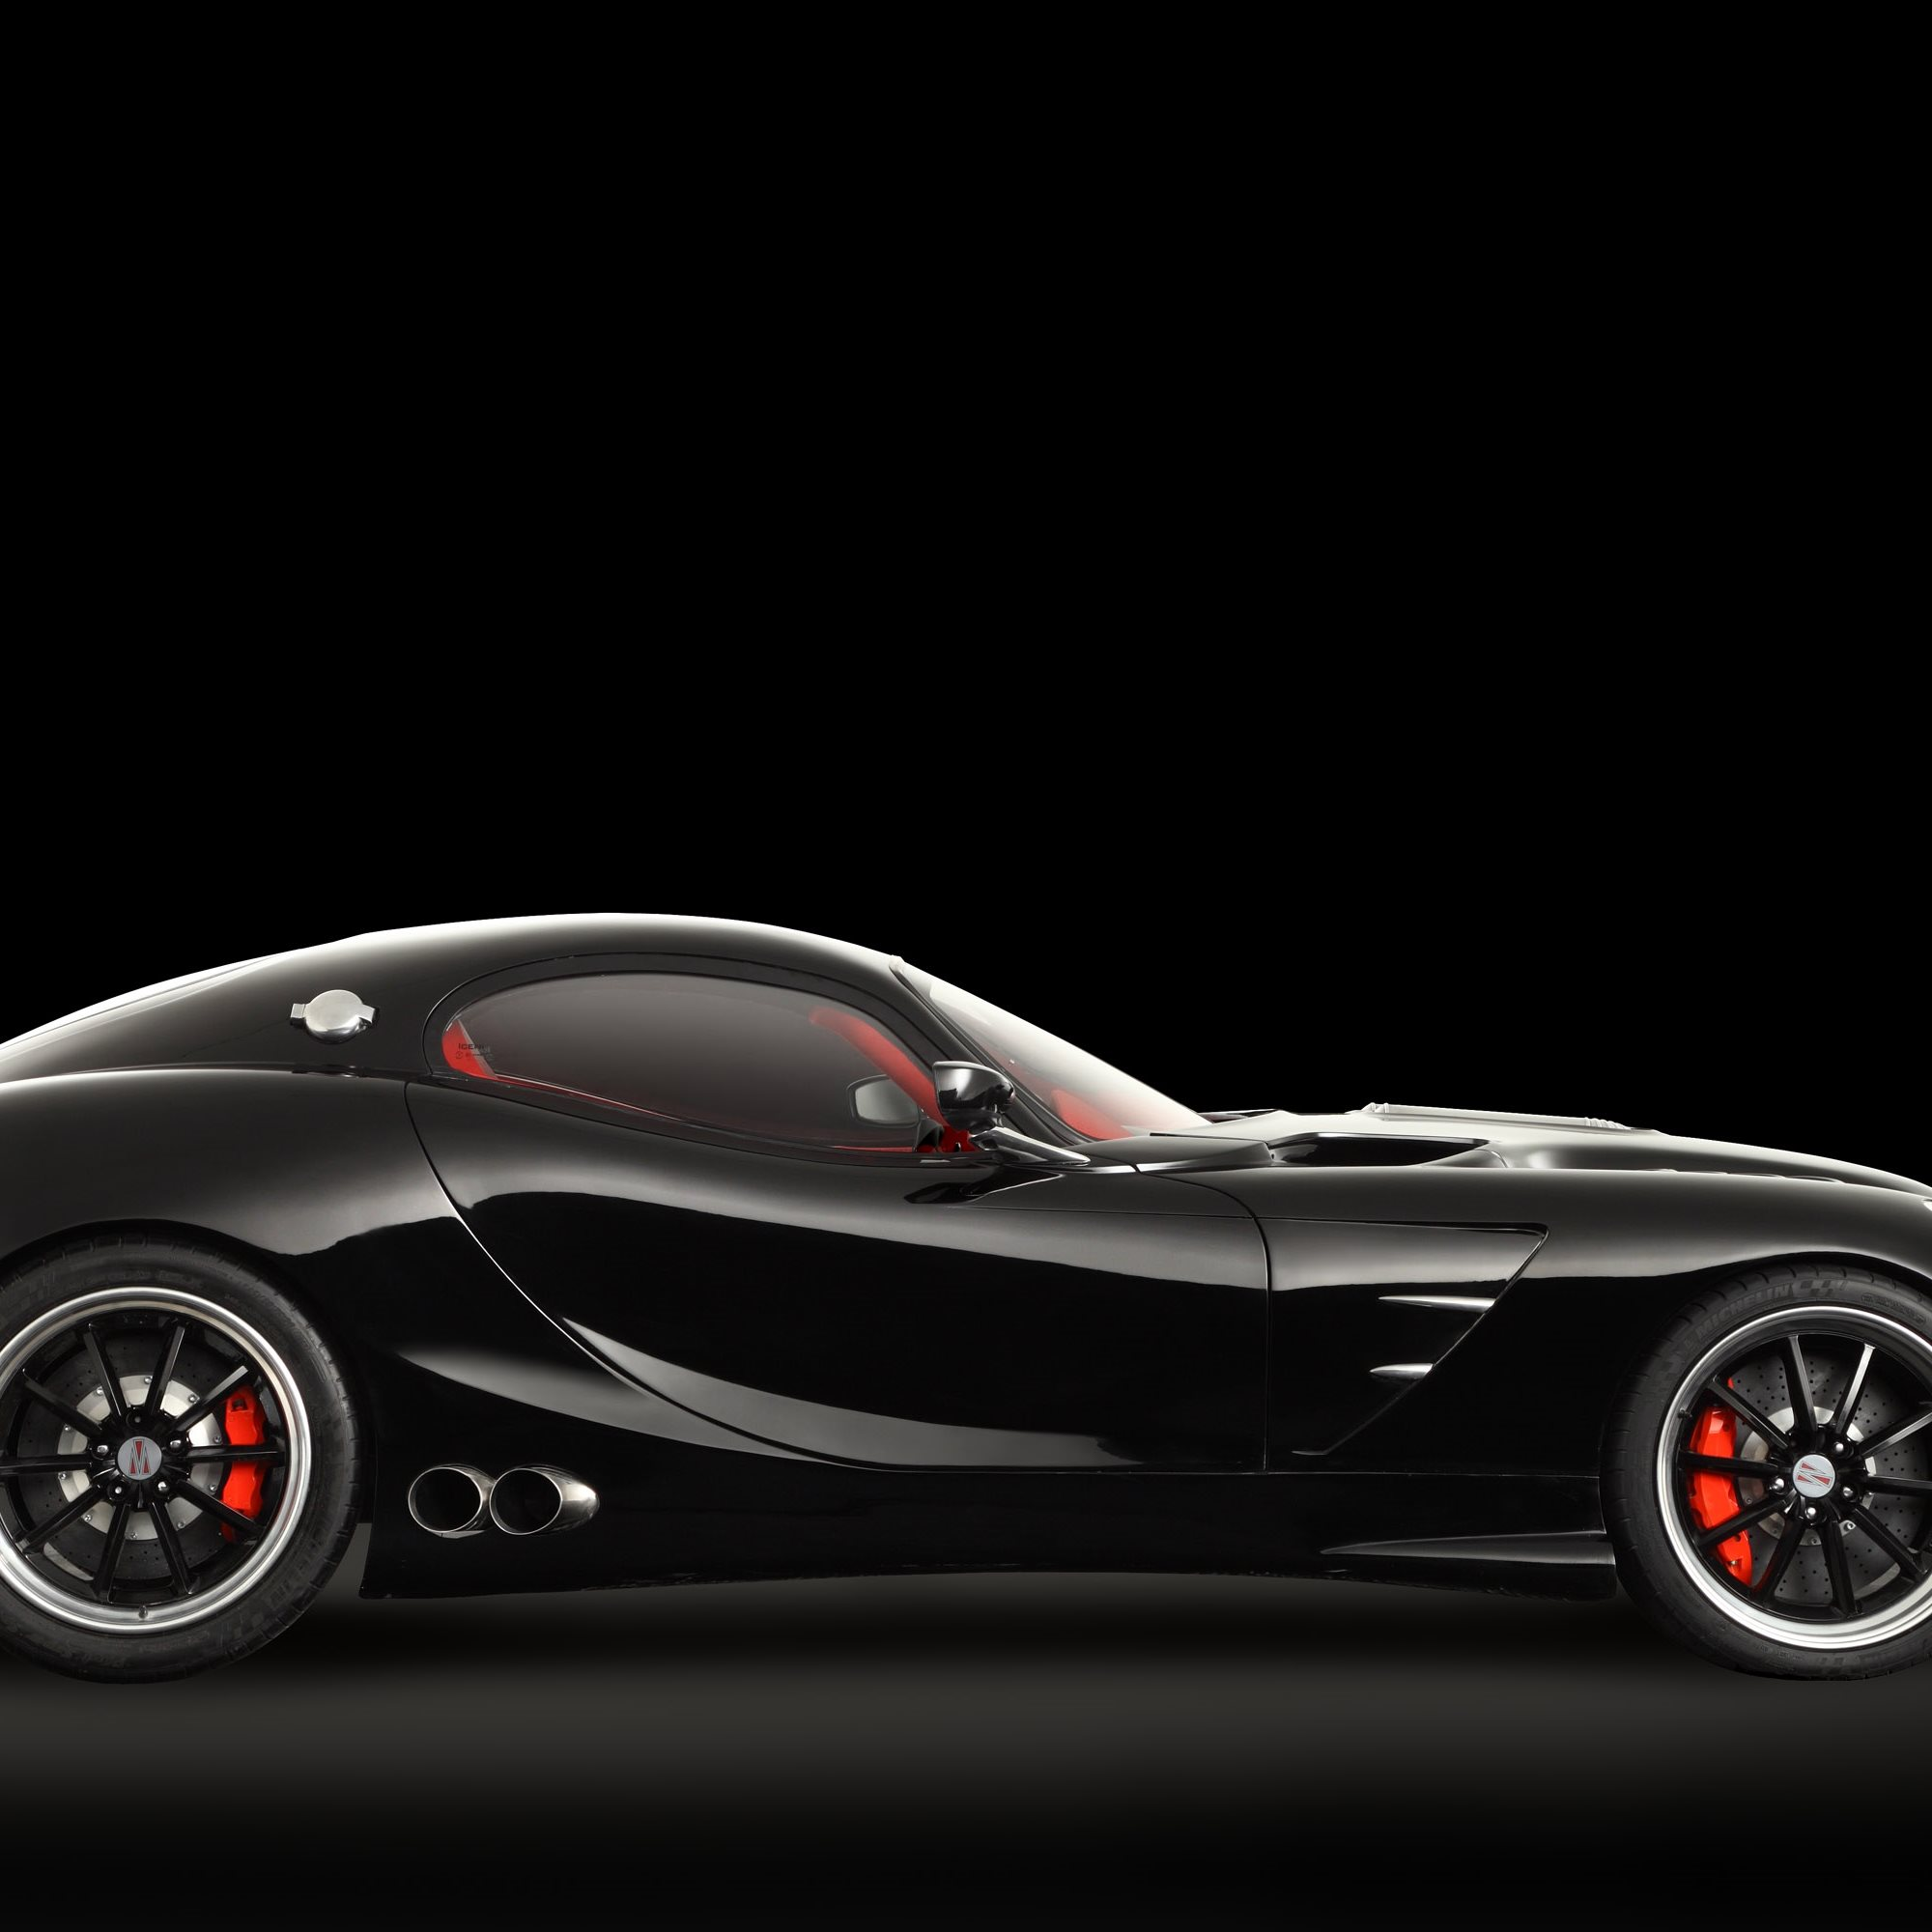 Trident Iceni Magna 2015 Wallpapers · 4K HD Desktop Backgrounds Phone ...